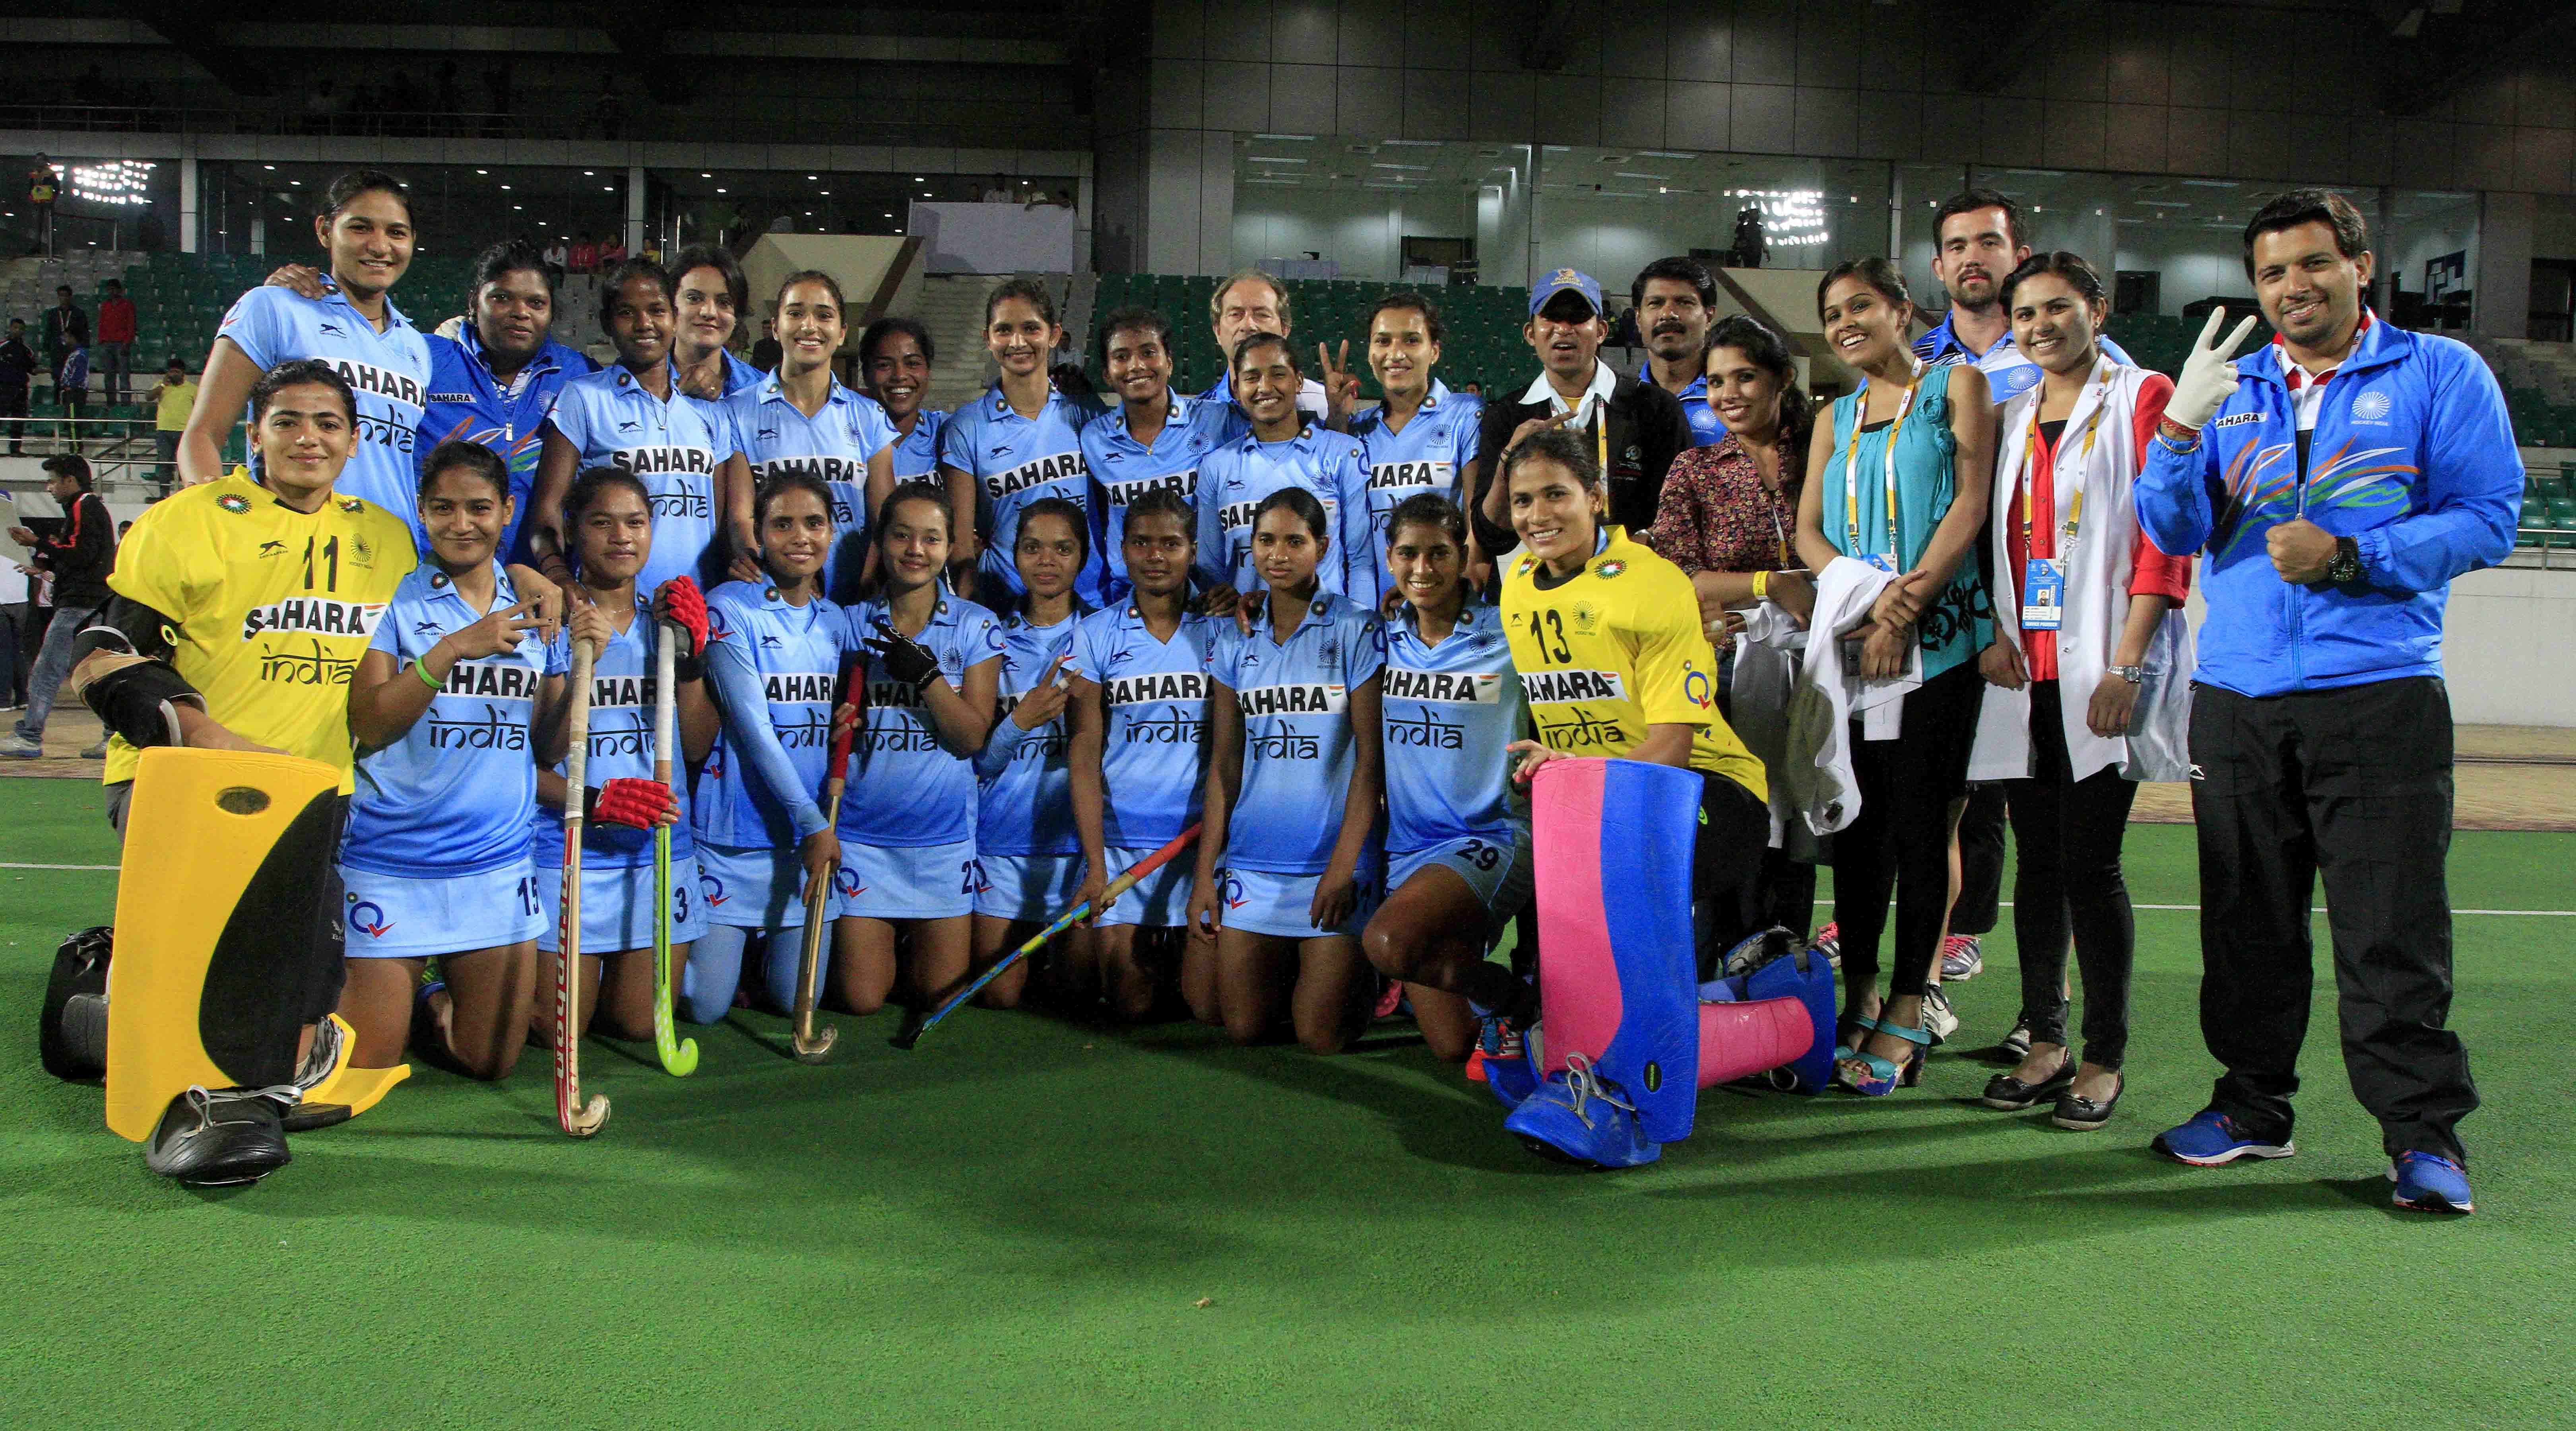 Beautiful Fih World Cup 2018 - indhock-1426283686  You Should Have_85511 .jpg